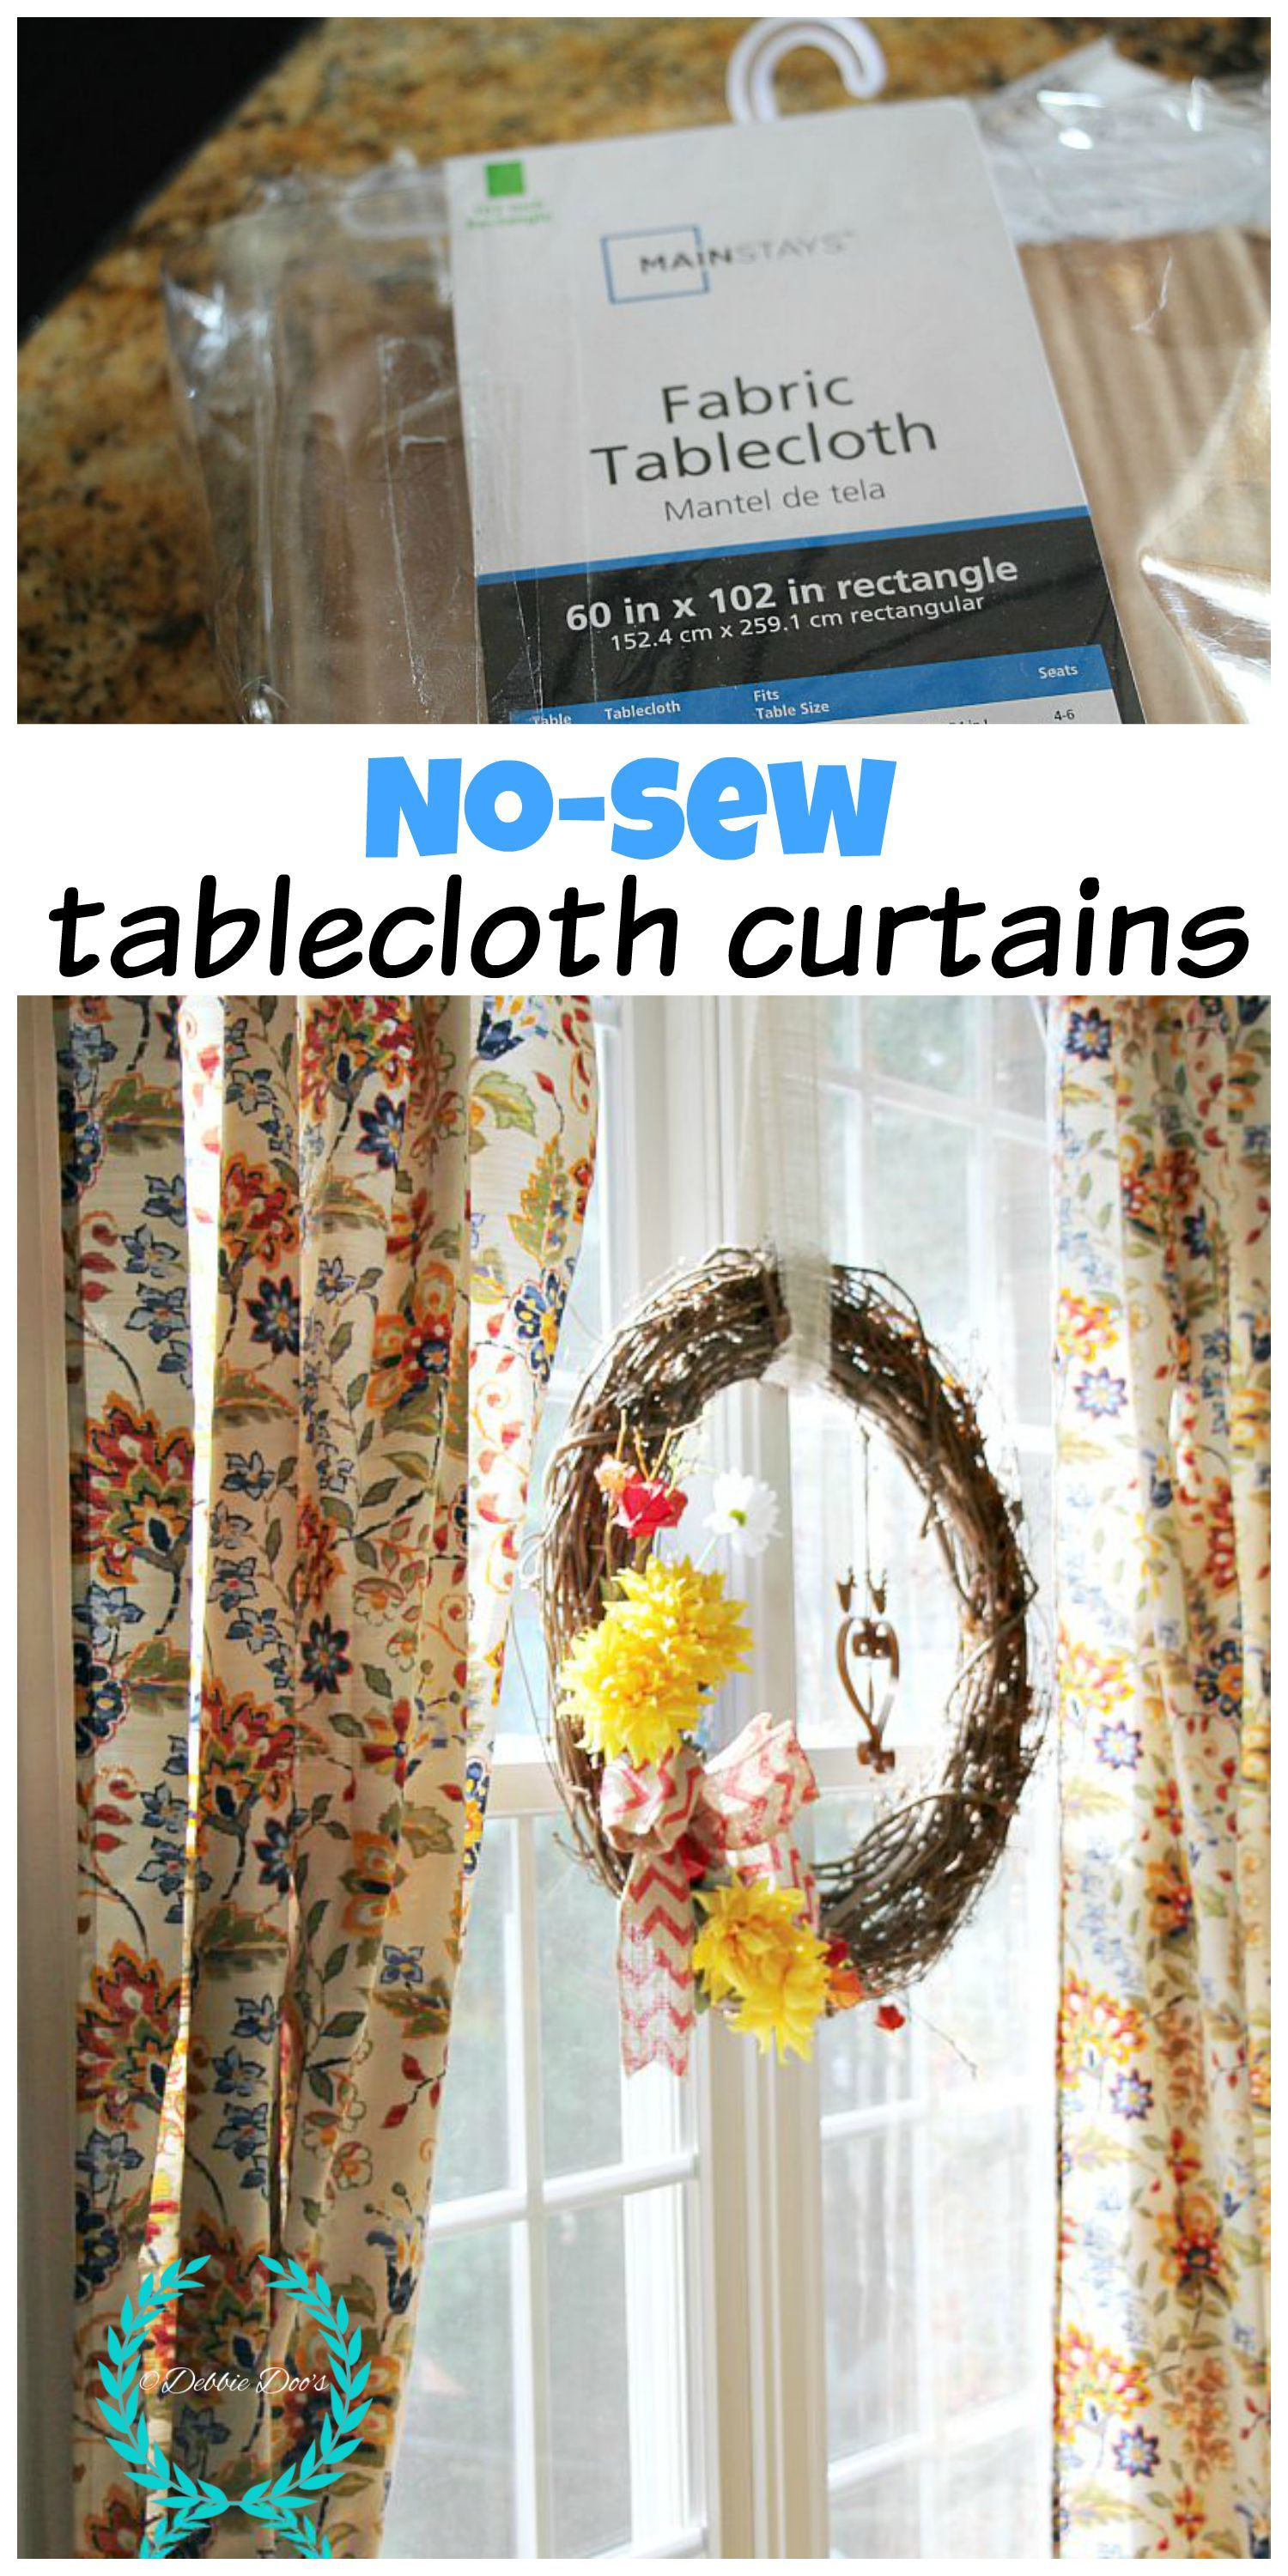 No sew tablecloth curtains for the home pinterest curtains